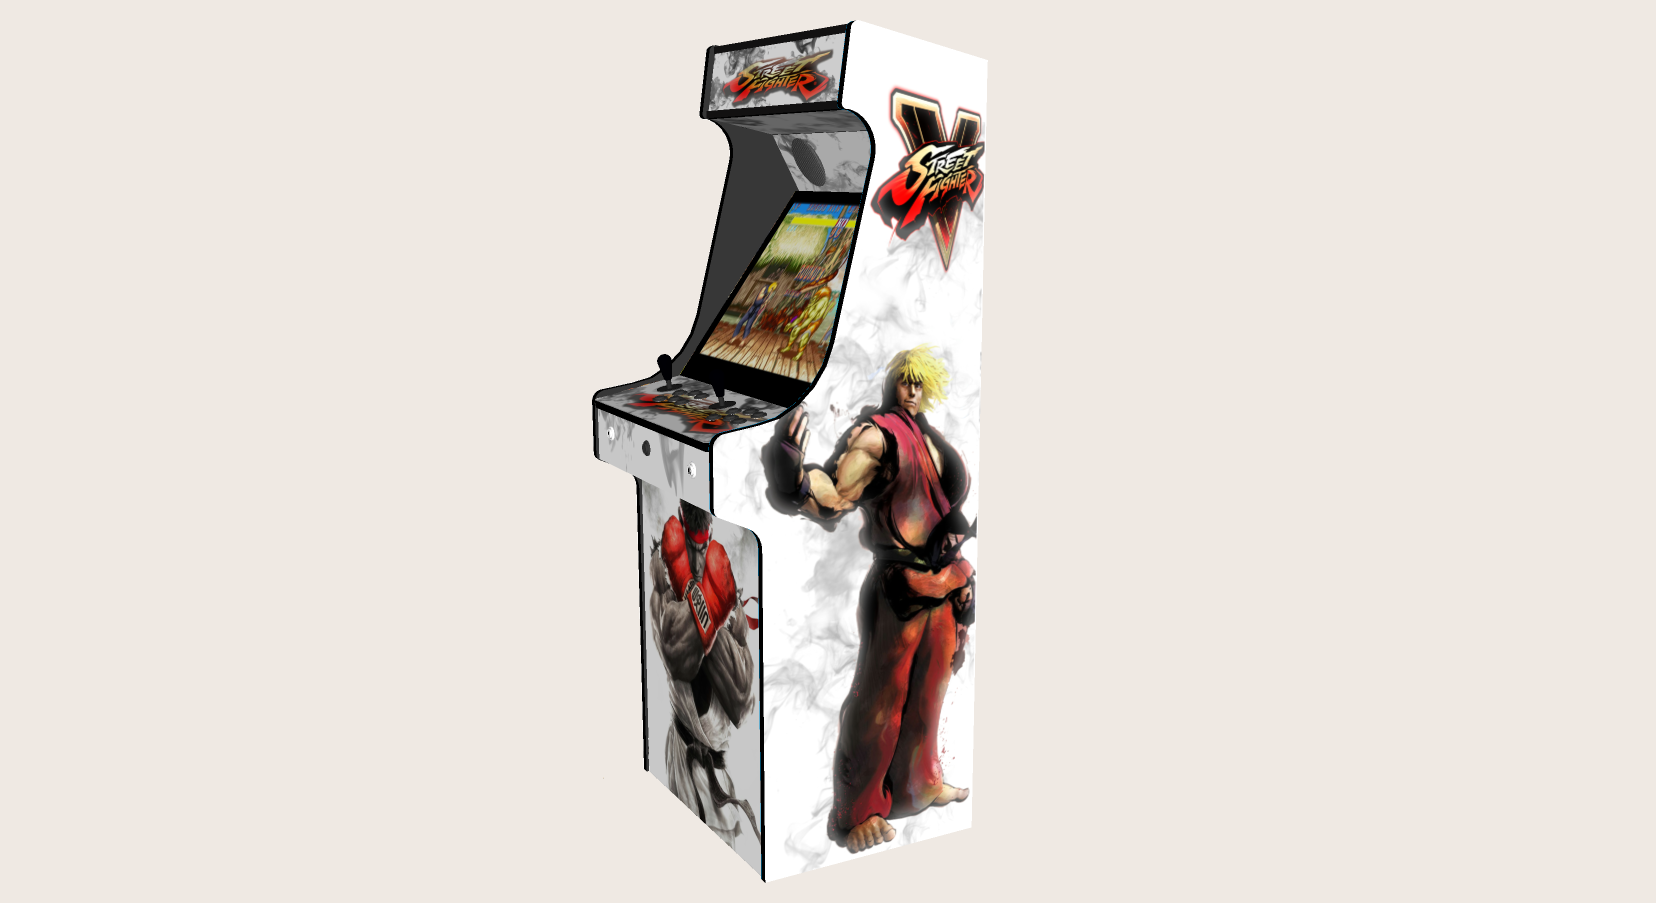 Classic Upright Arcade Machine - Street Fighter 5 Theme - Right